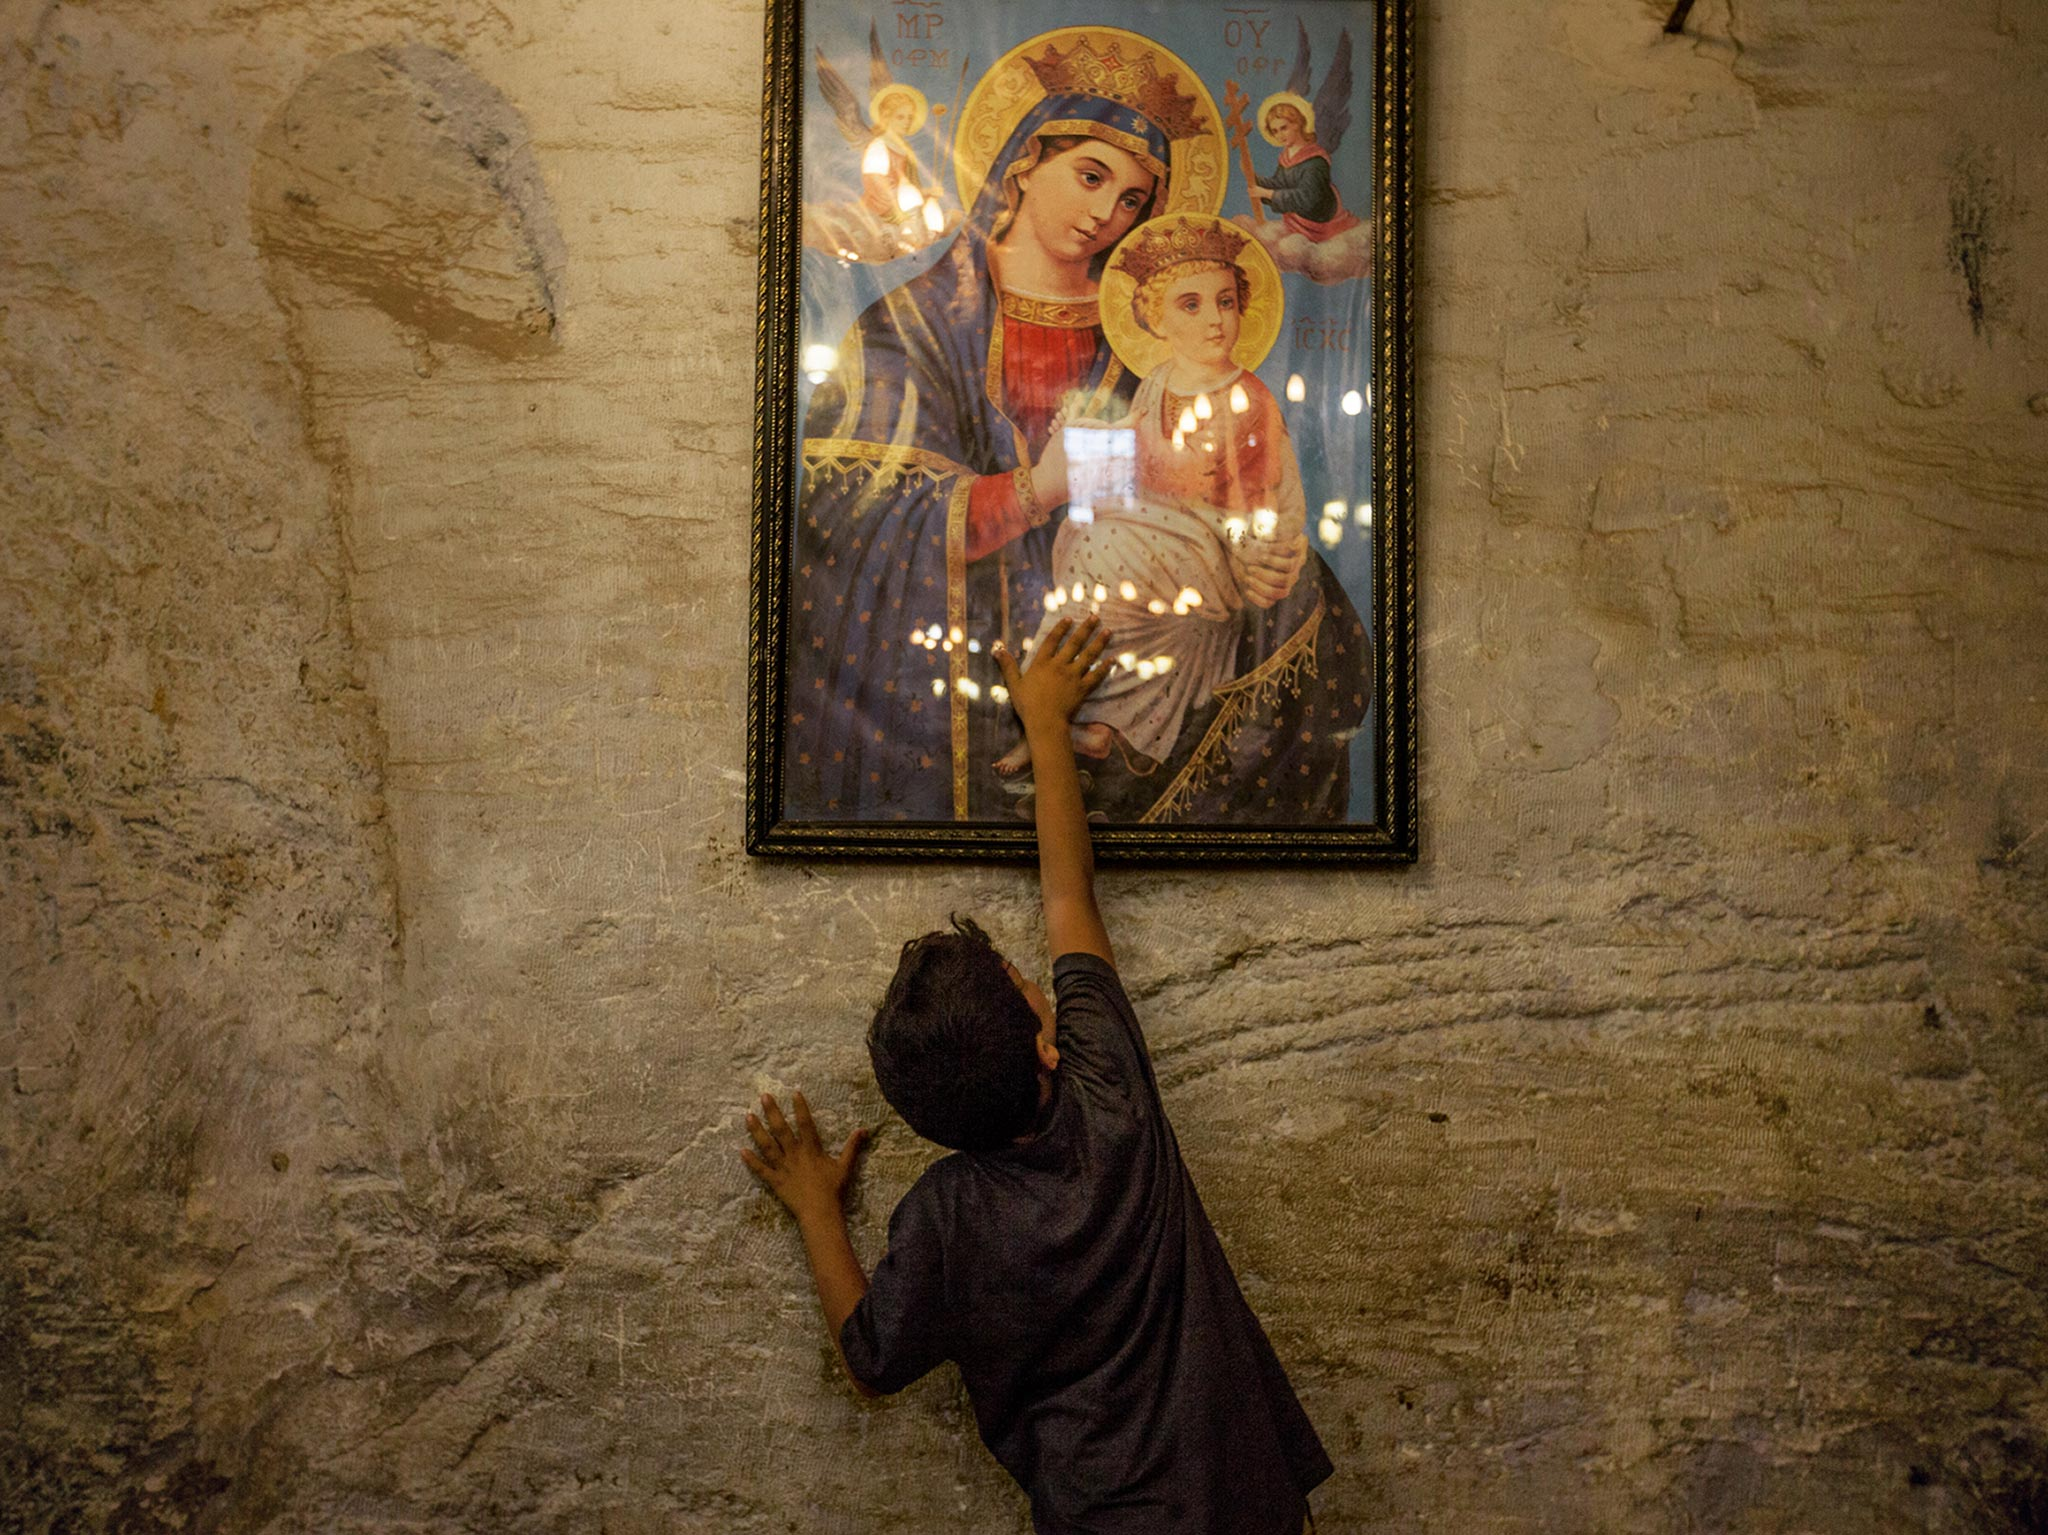 "A young boy in the Deir al Adra monastery reaches up to touch a painted image of Mary. In the Koran, Maryam (Mary) is the holiest woman mentioned. ""So the Virgin Mary is not at all strange to Muslims,"" says Roten. ""In fact, wherever there is a connection between Christians and Muslims—or any two groups that know and love her—there is a common value in the covenant mother."""